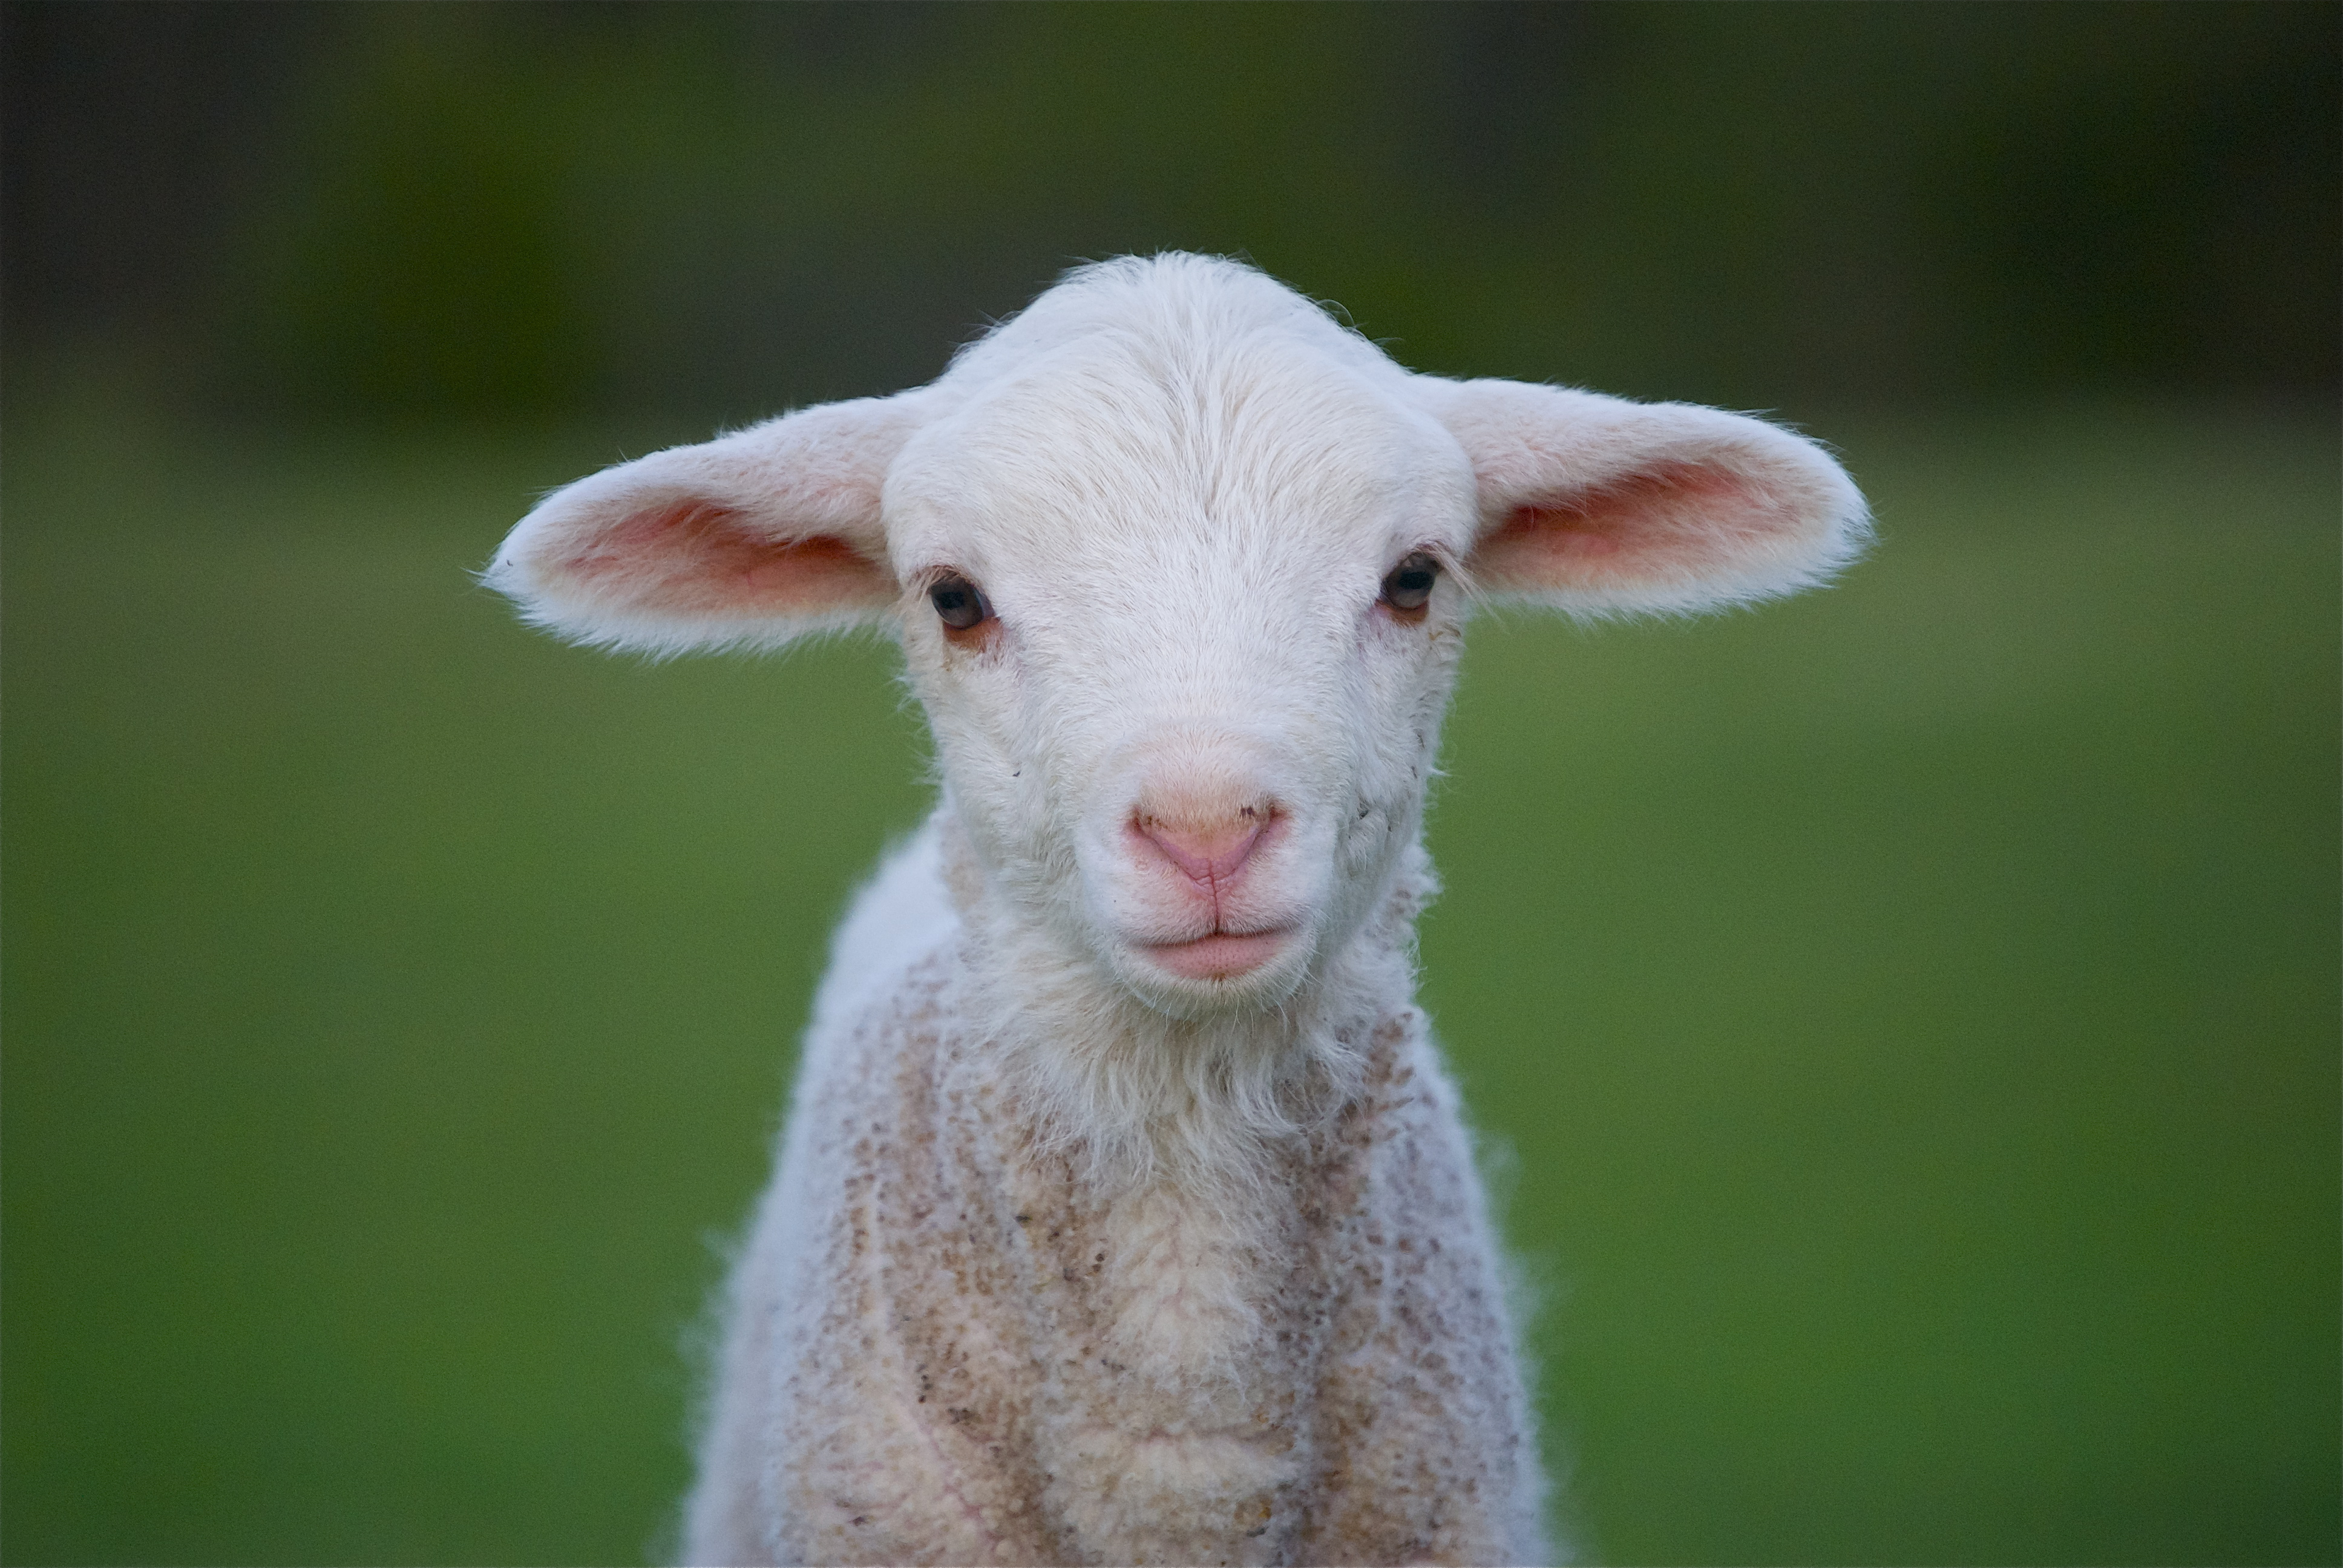 Lamb High Definition Image | Dreamicus